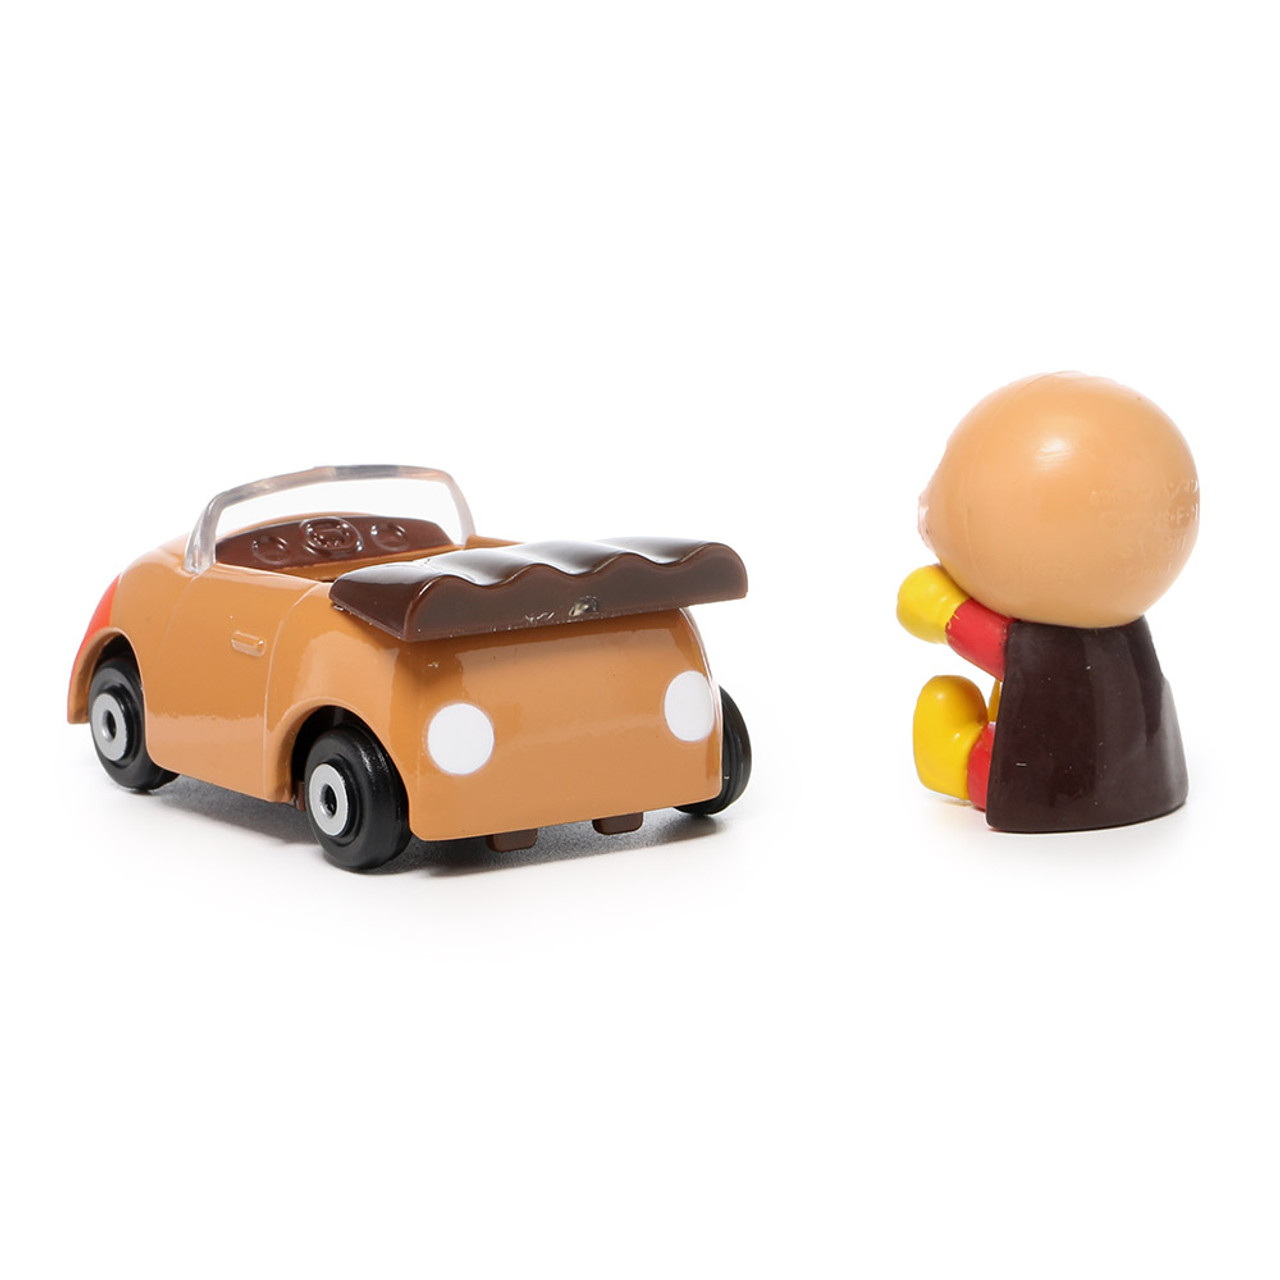 Sega Toys Anpanman Museum Go Go Mini Vehicle Carry Hero - Anpanman Roadster ( Roadster Back )